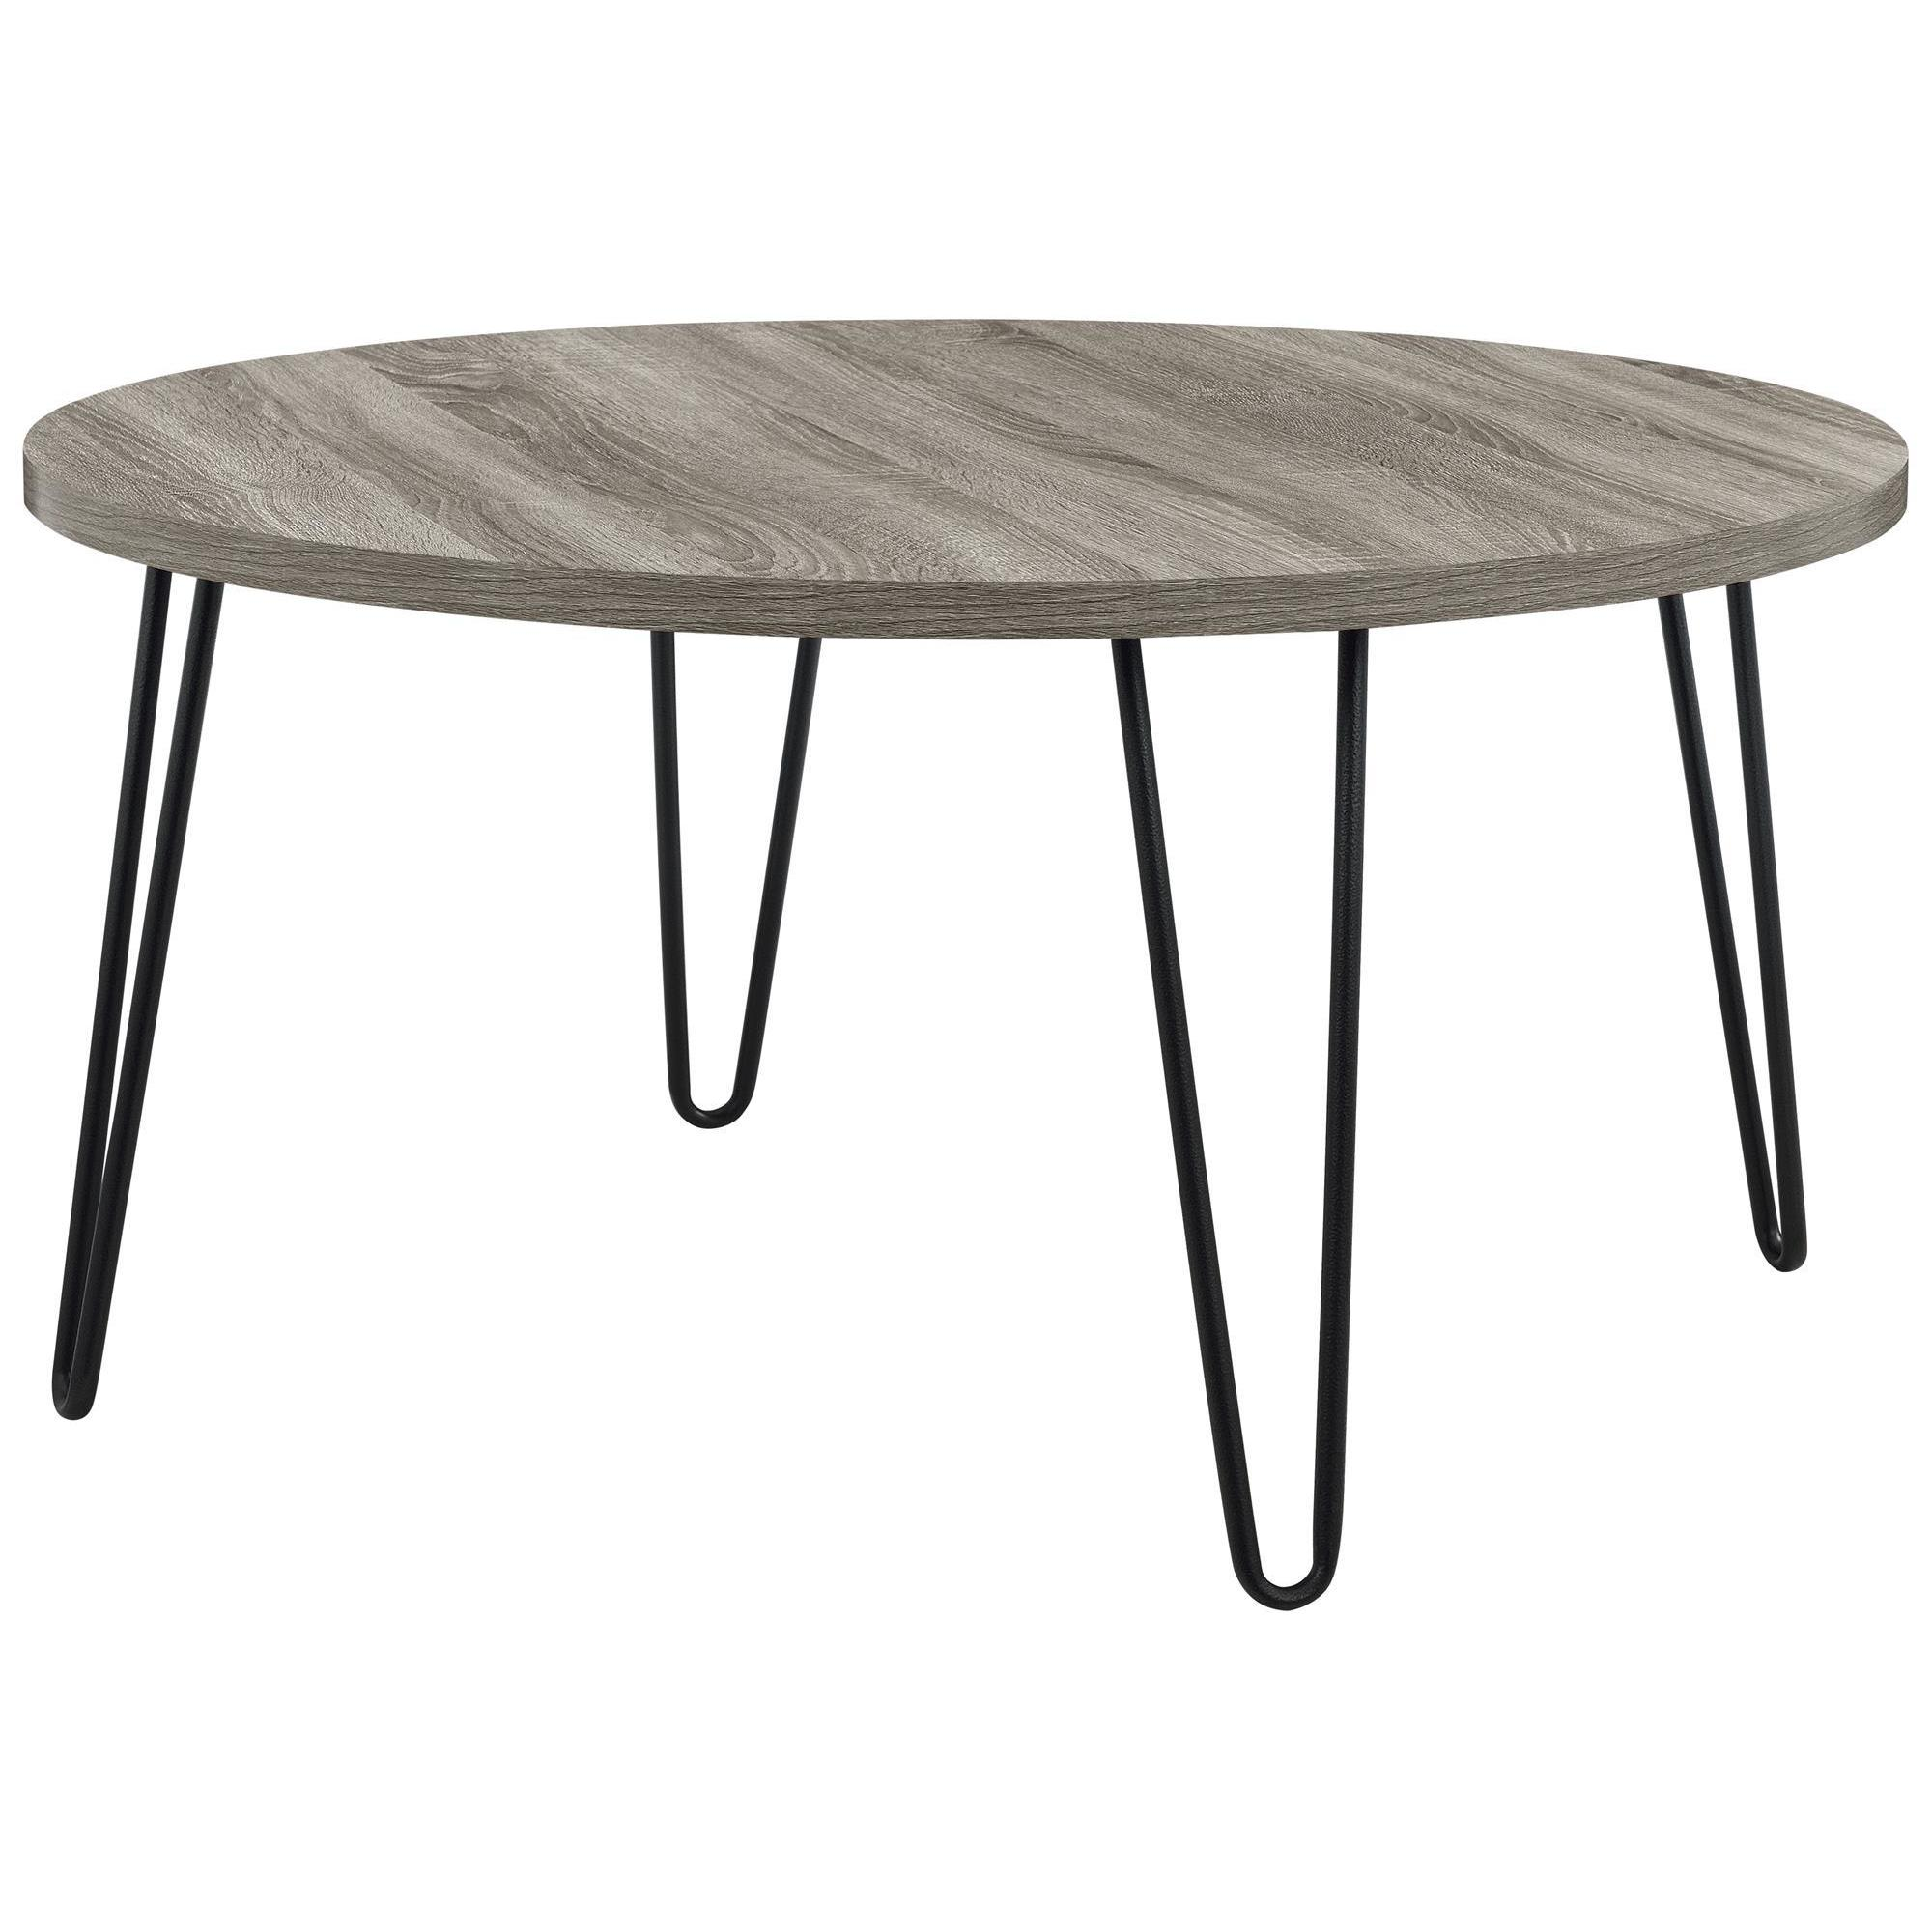 Avenue Greene Isaac Retro Round Coffee Table Free Shipping Today 19618476